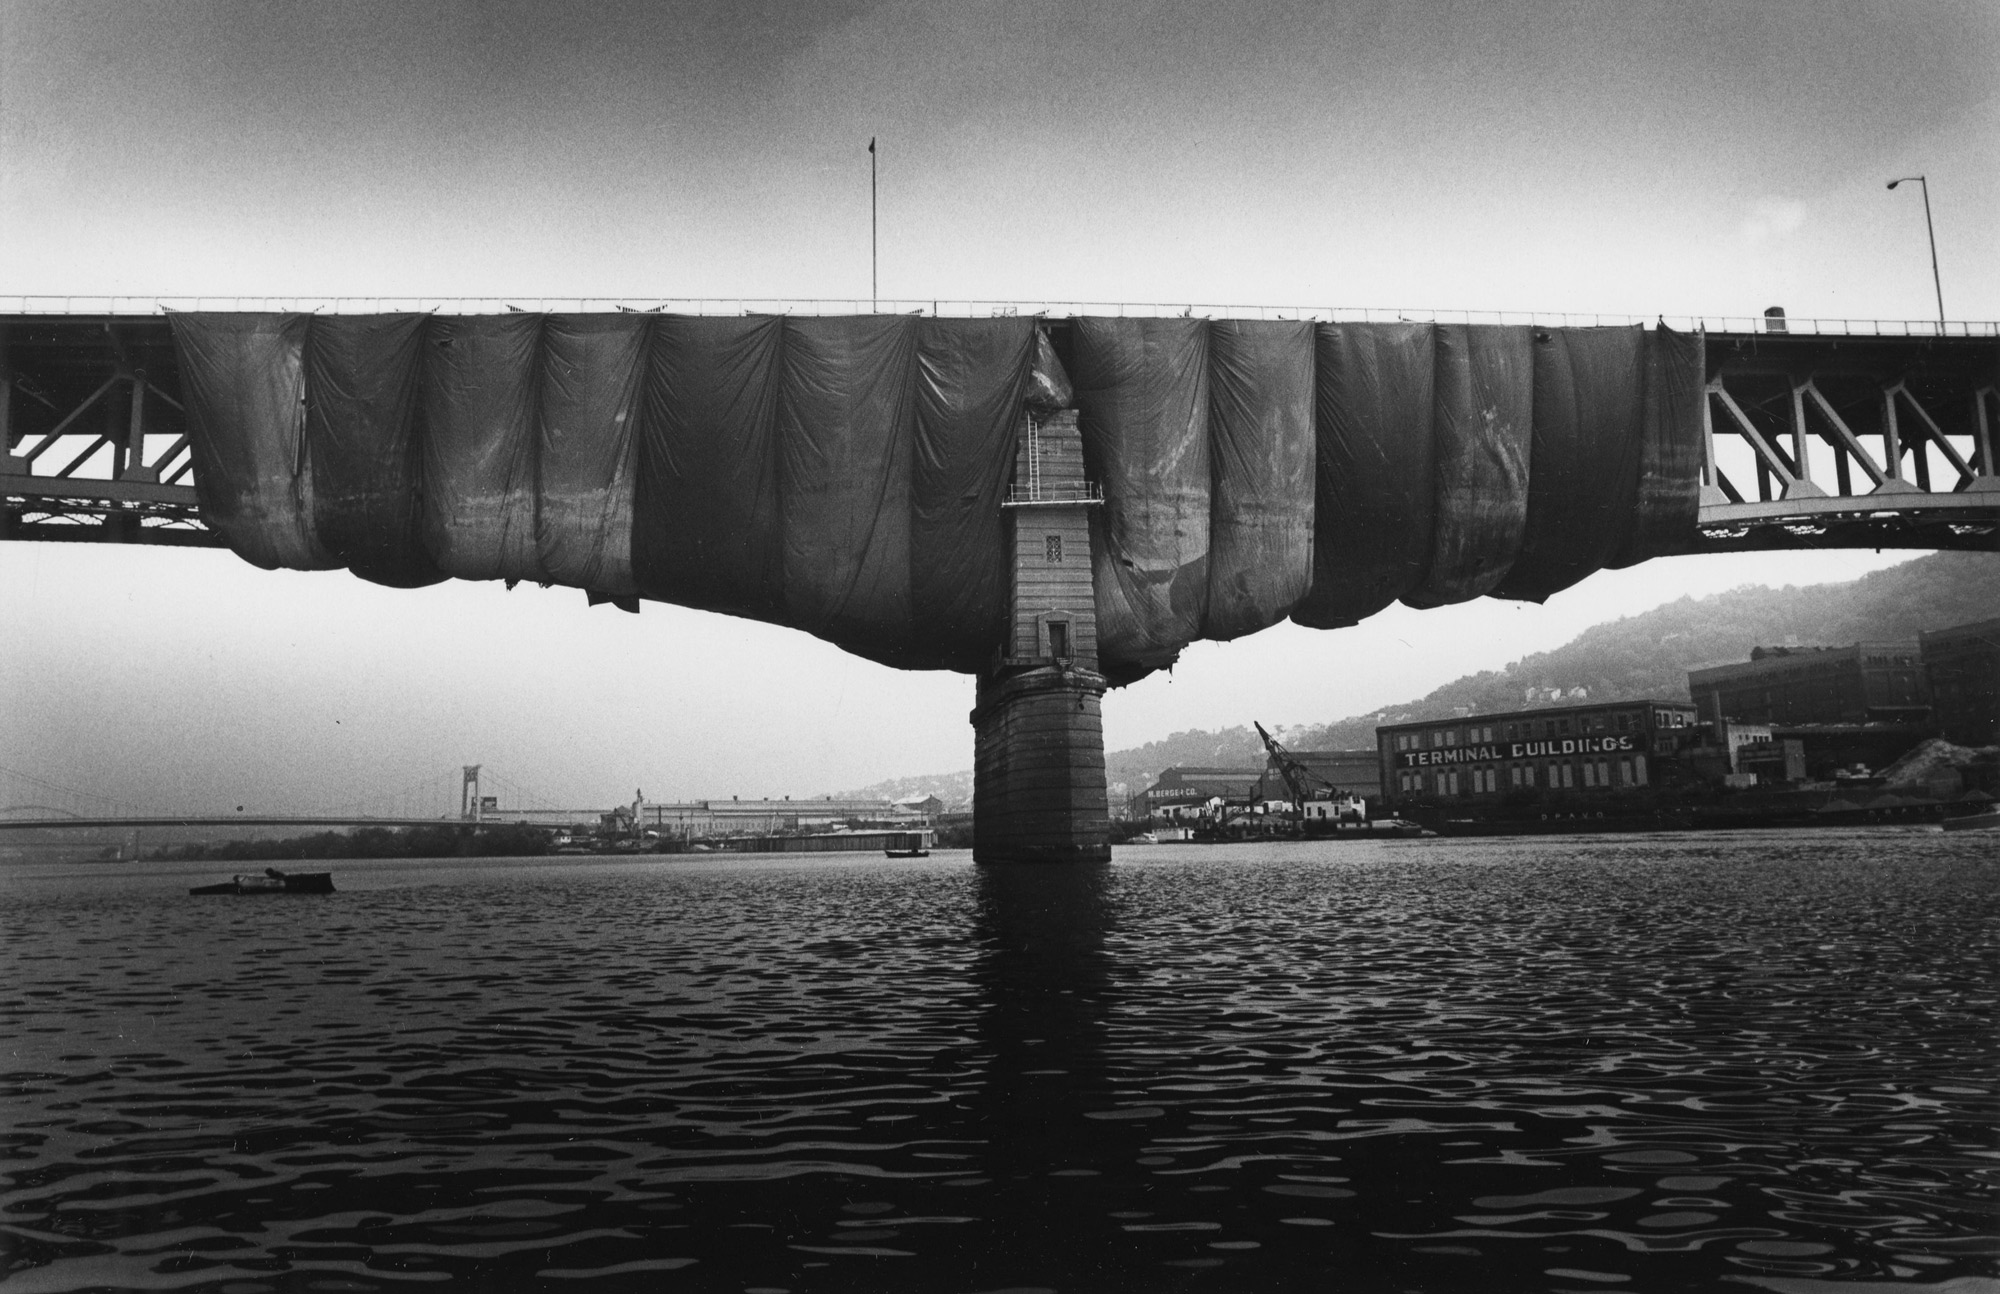 Portions of the Bridge were covered so the bridge could be painted in October 1983. (Andy Starnes/Post-Gazette)